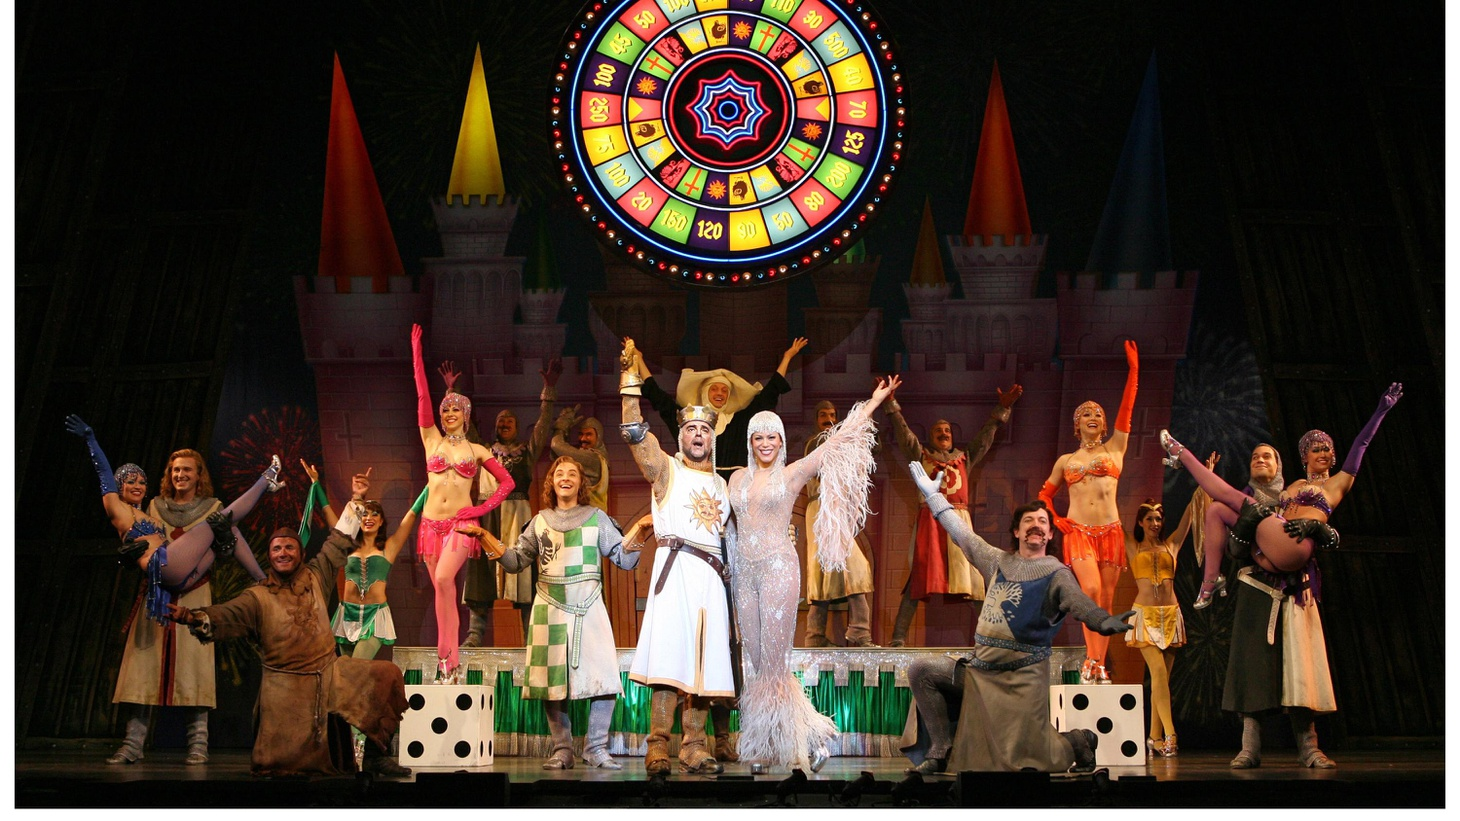 """That's the song, """"Always Look on the Bright Side of Life,"""" from the musical Spamalot.  Of course, die-hard Monty Python fans will tell you that song originally came from the 1979 movie Life of Brian — but then very little that's in Spamalot is original.  The full title of this show, which won the 2005 Tony Award for Best Musical, is Monty Python's Spamalot: A New Musical lovingly ripped off from the motion picture Monty Python and the Holy Grail..."""